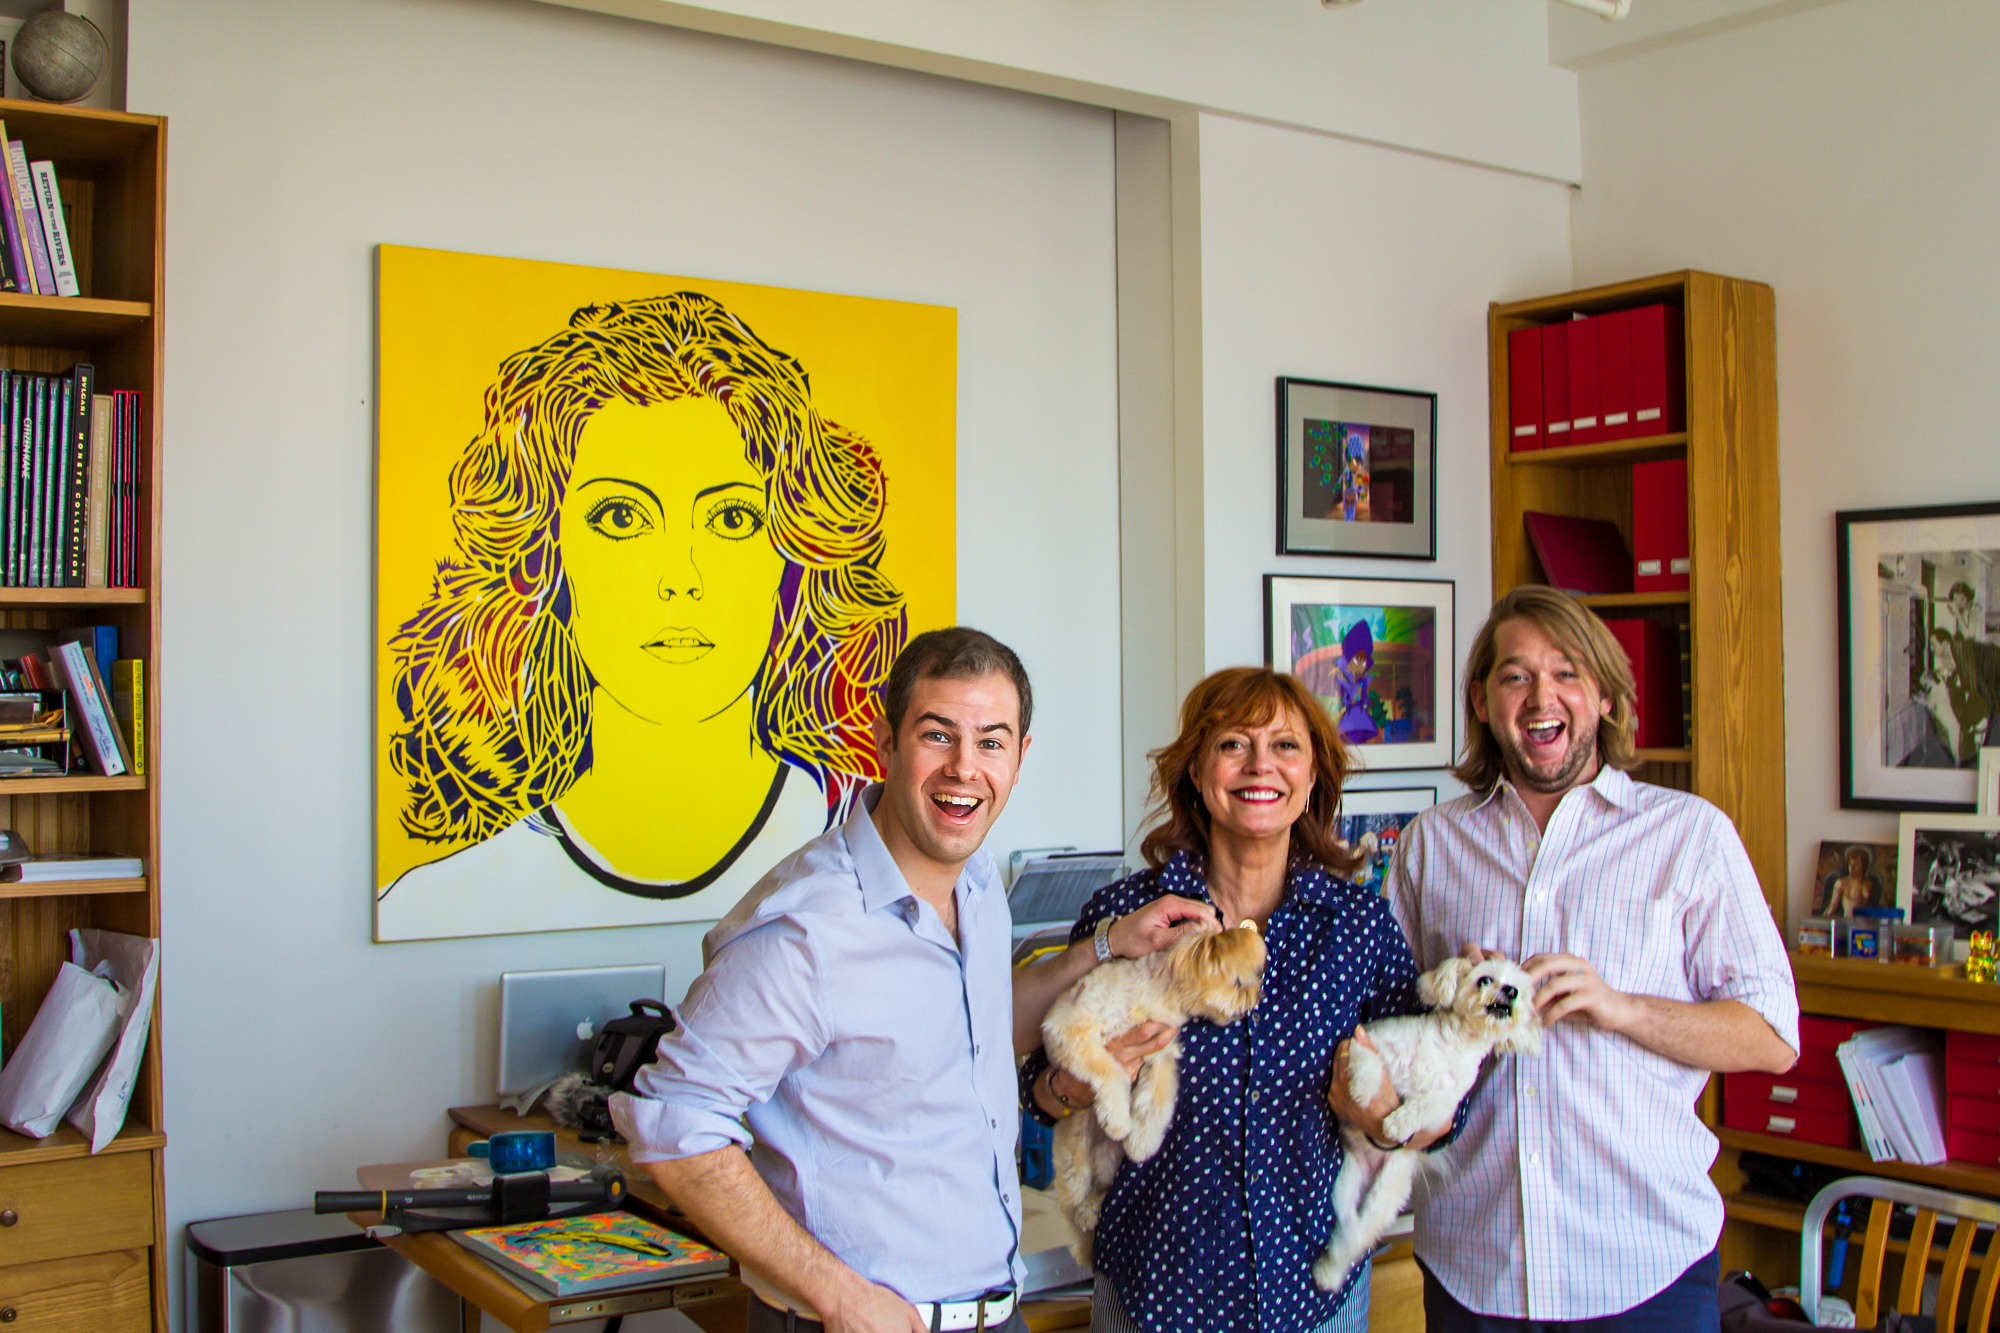 Delivery of Susan Sarandon's portrait. She loved it so much that it now hangs in her home office. Very honored :)